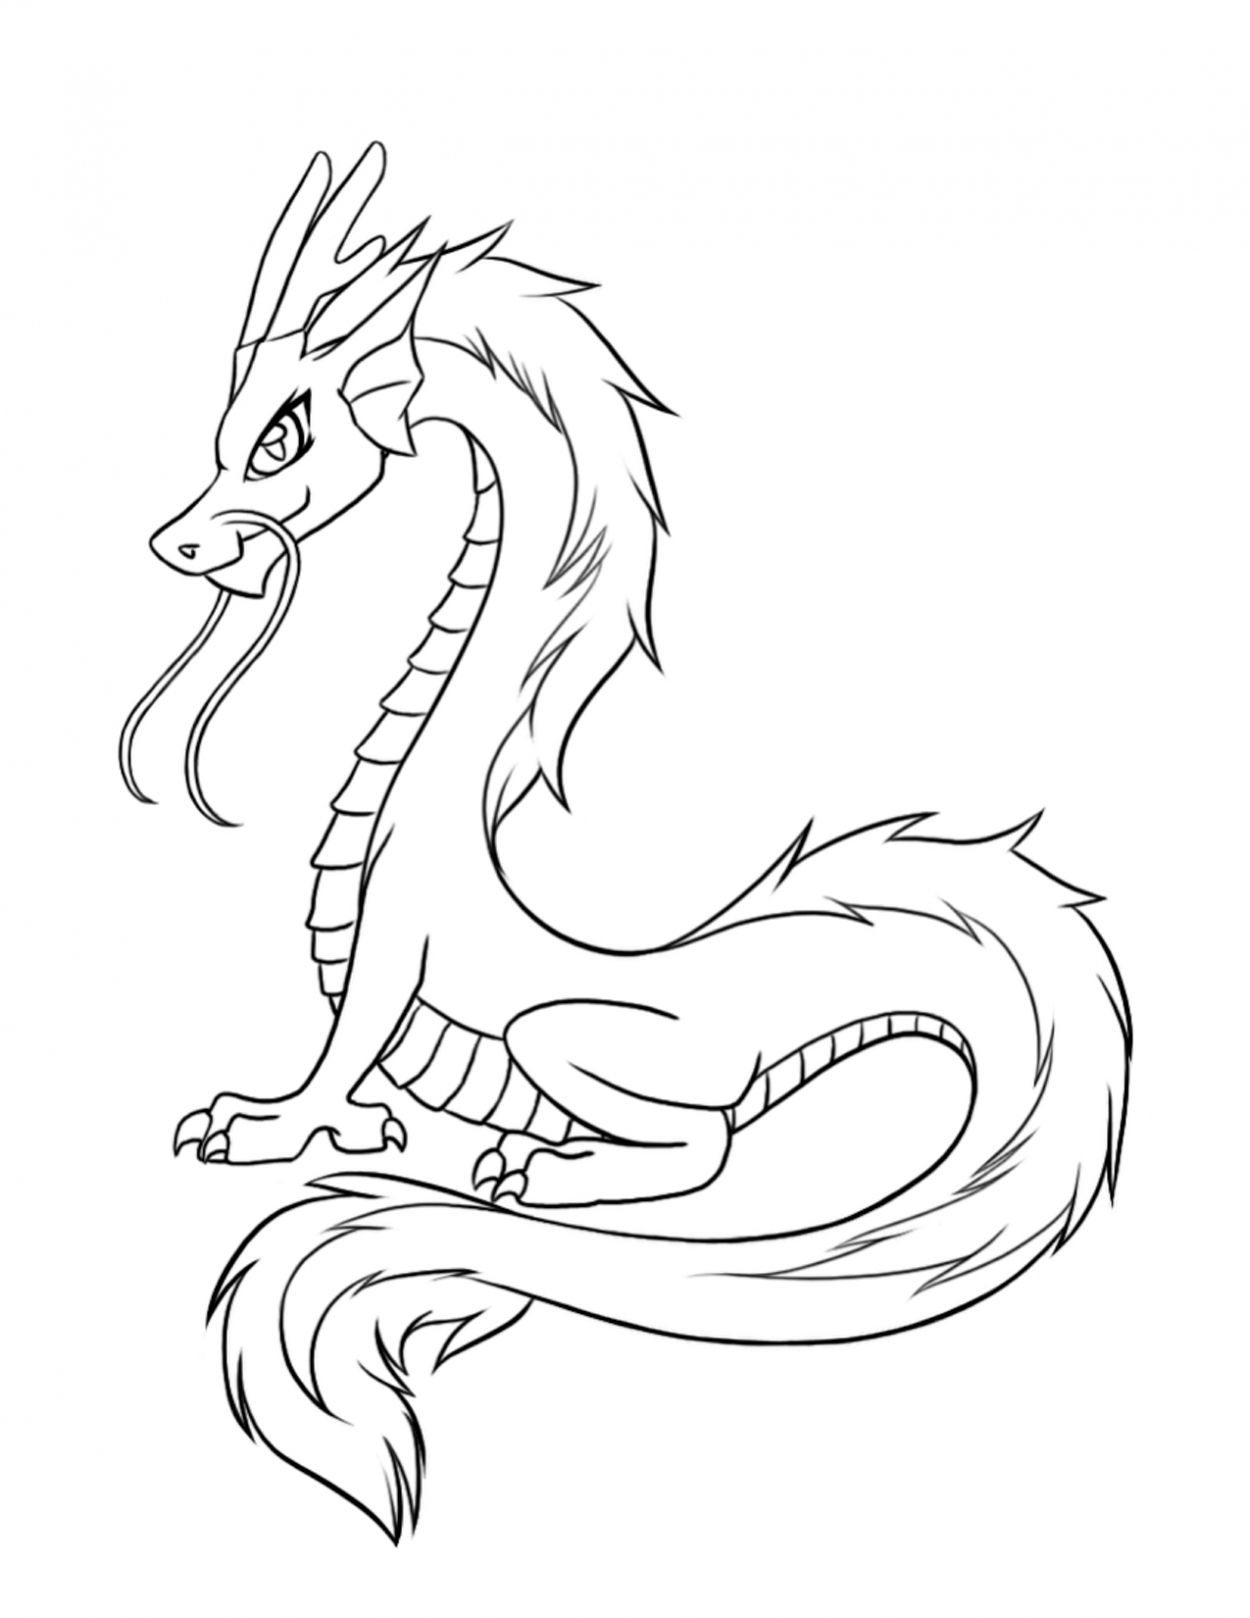 chinese dragon colouring pictures chinese dragon coloring pages to download and print for free pictures chinese dragon colouring